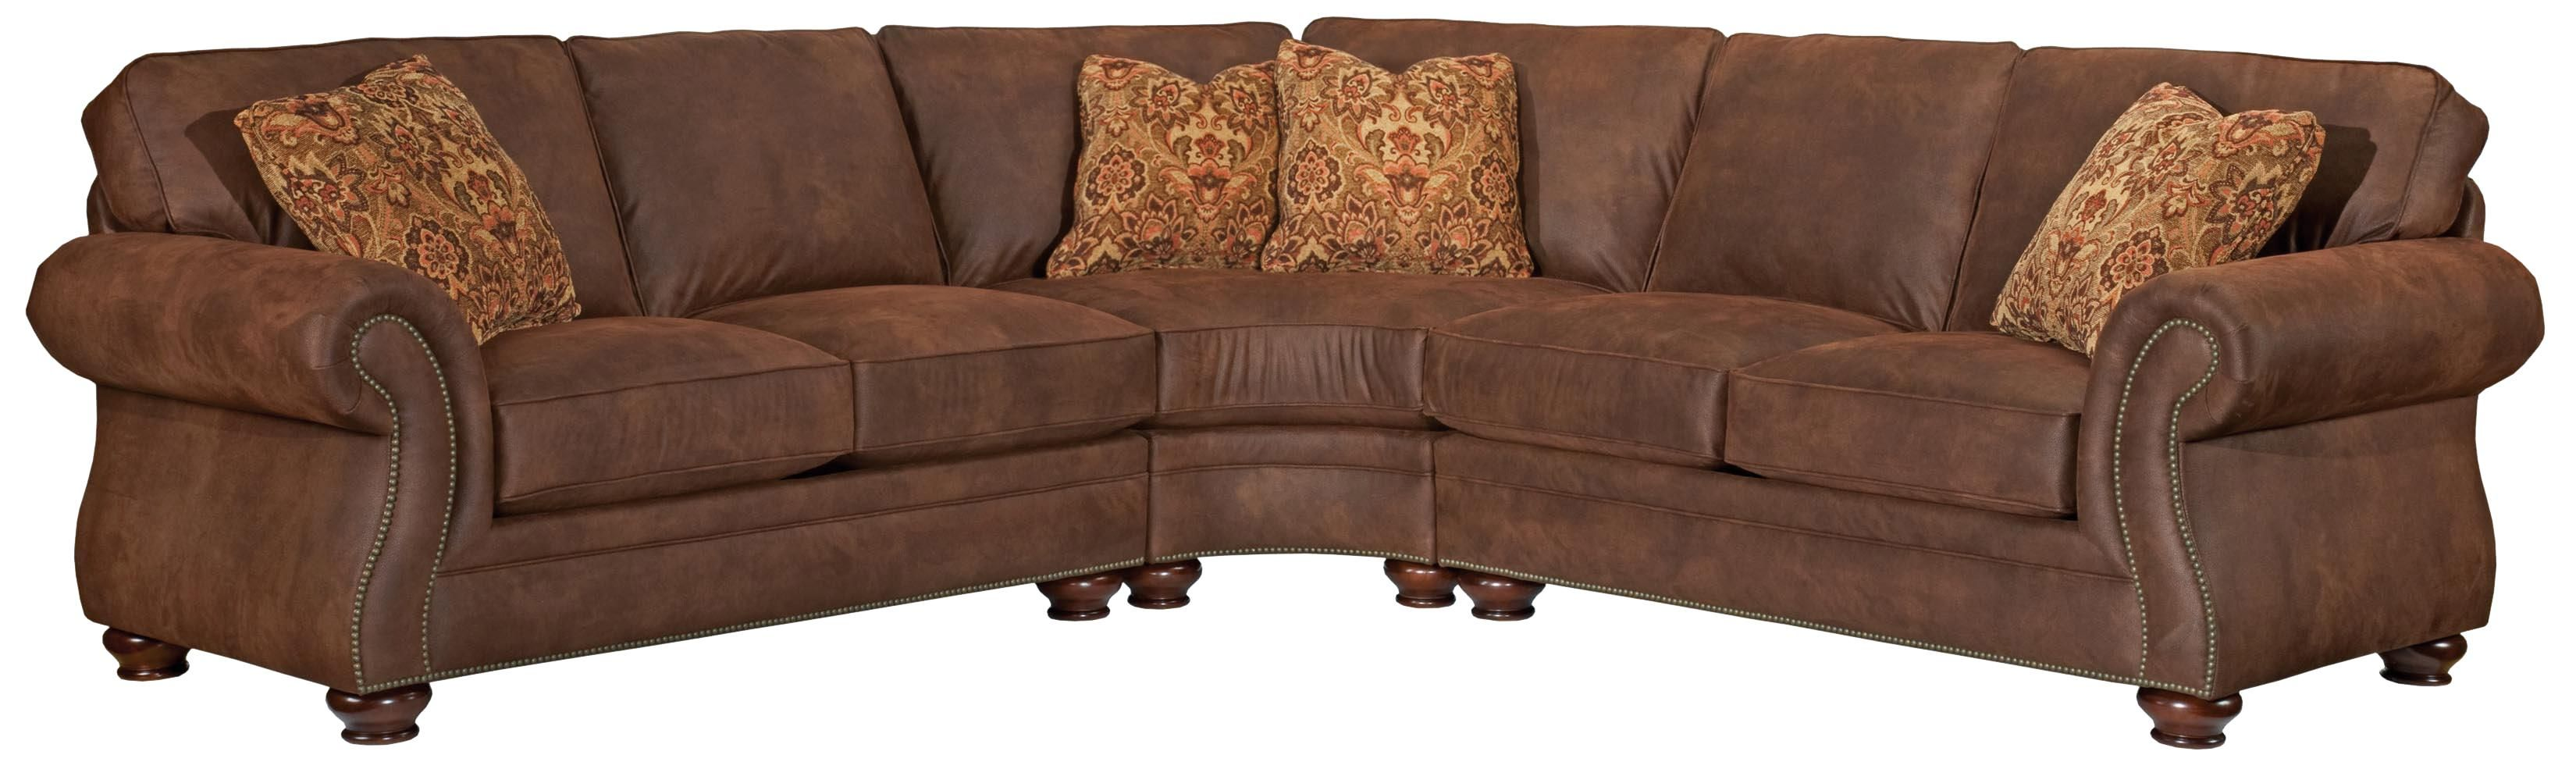 5081 Laramie 3 Piece Sectional Sofa By Broyhill Furniture